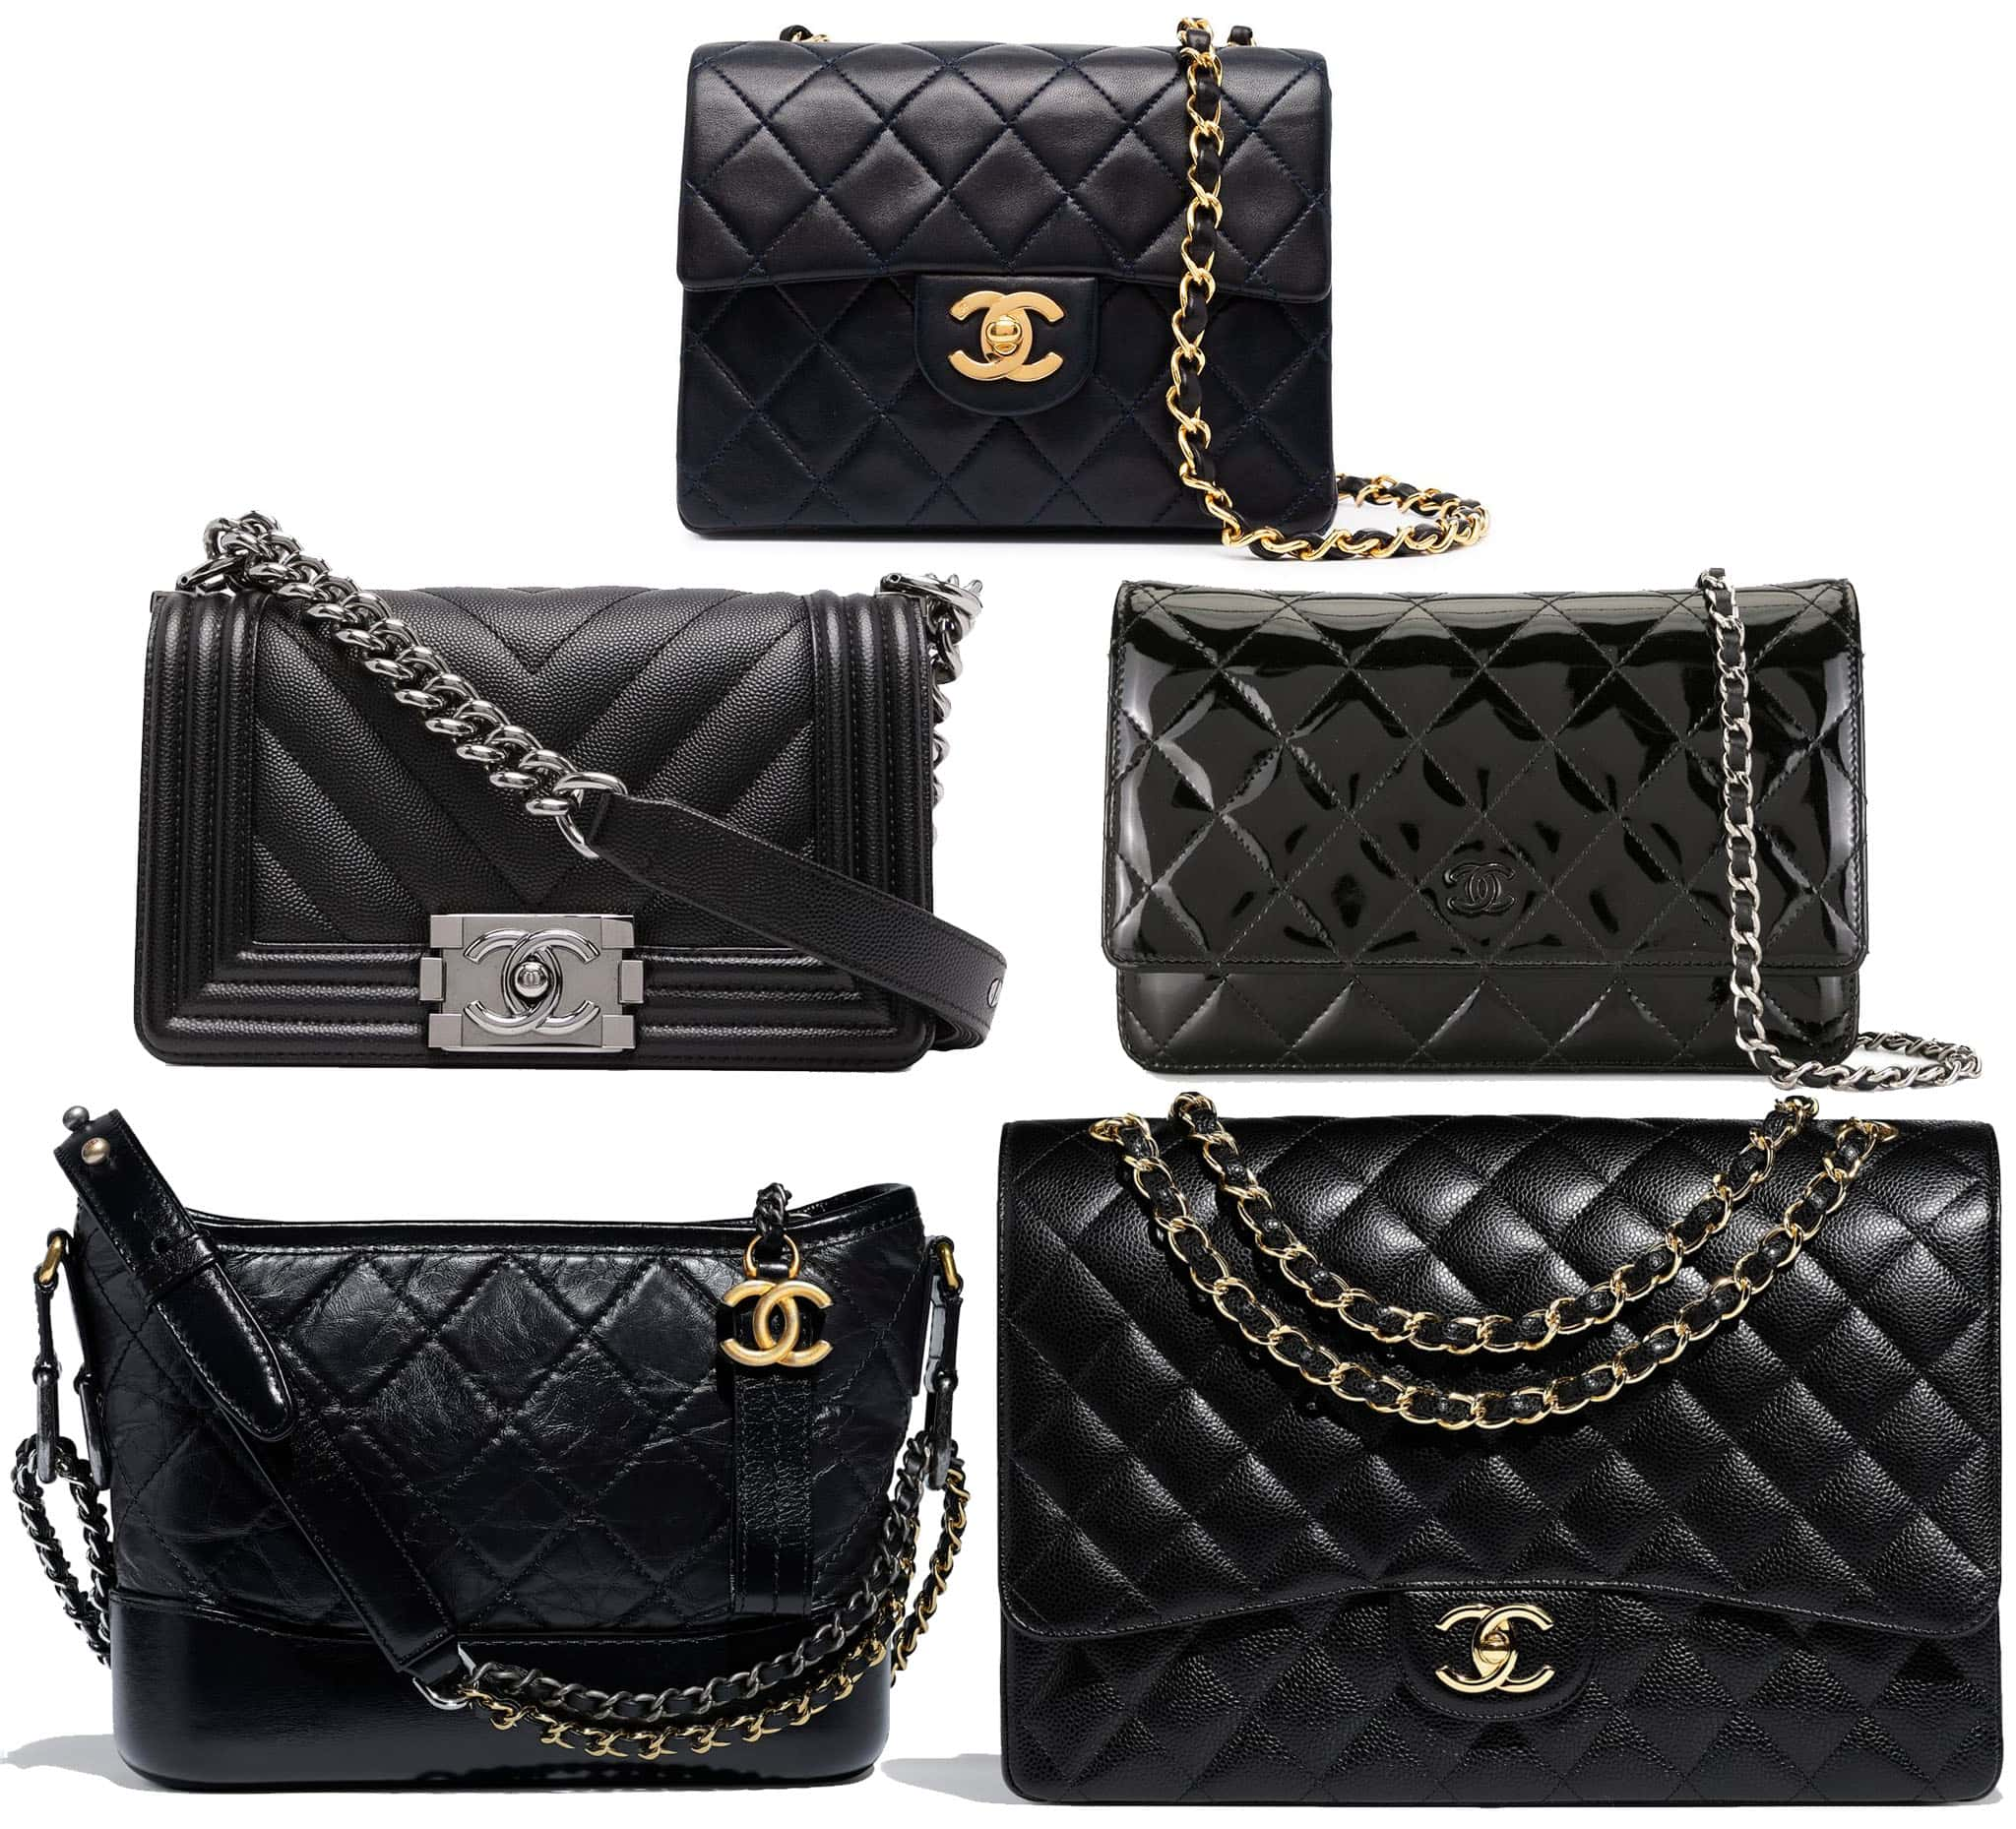 (Top) Chanel Classic Small Flap Bag, (middle) Chanel Small Boy Flap Bag and Chanel WOC, (bottom) Chanel Gabrielle Small Hobo Bag and Chanel Classic Maxi Flap Bag